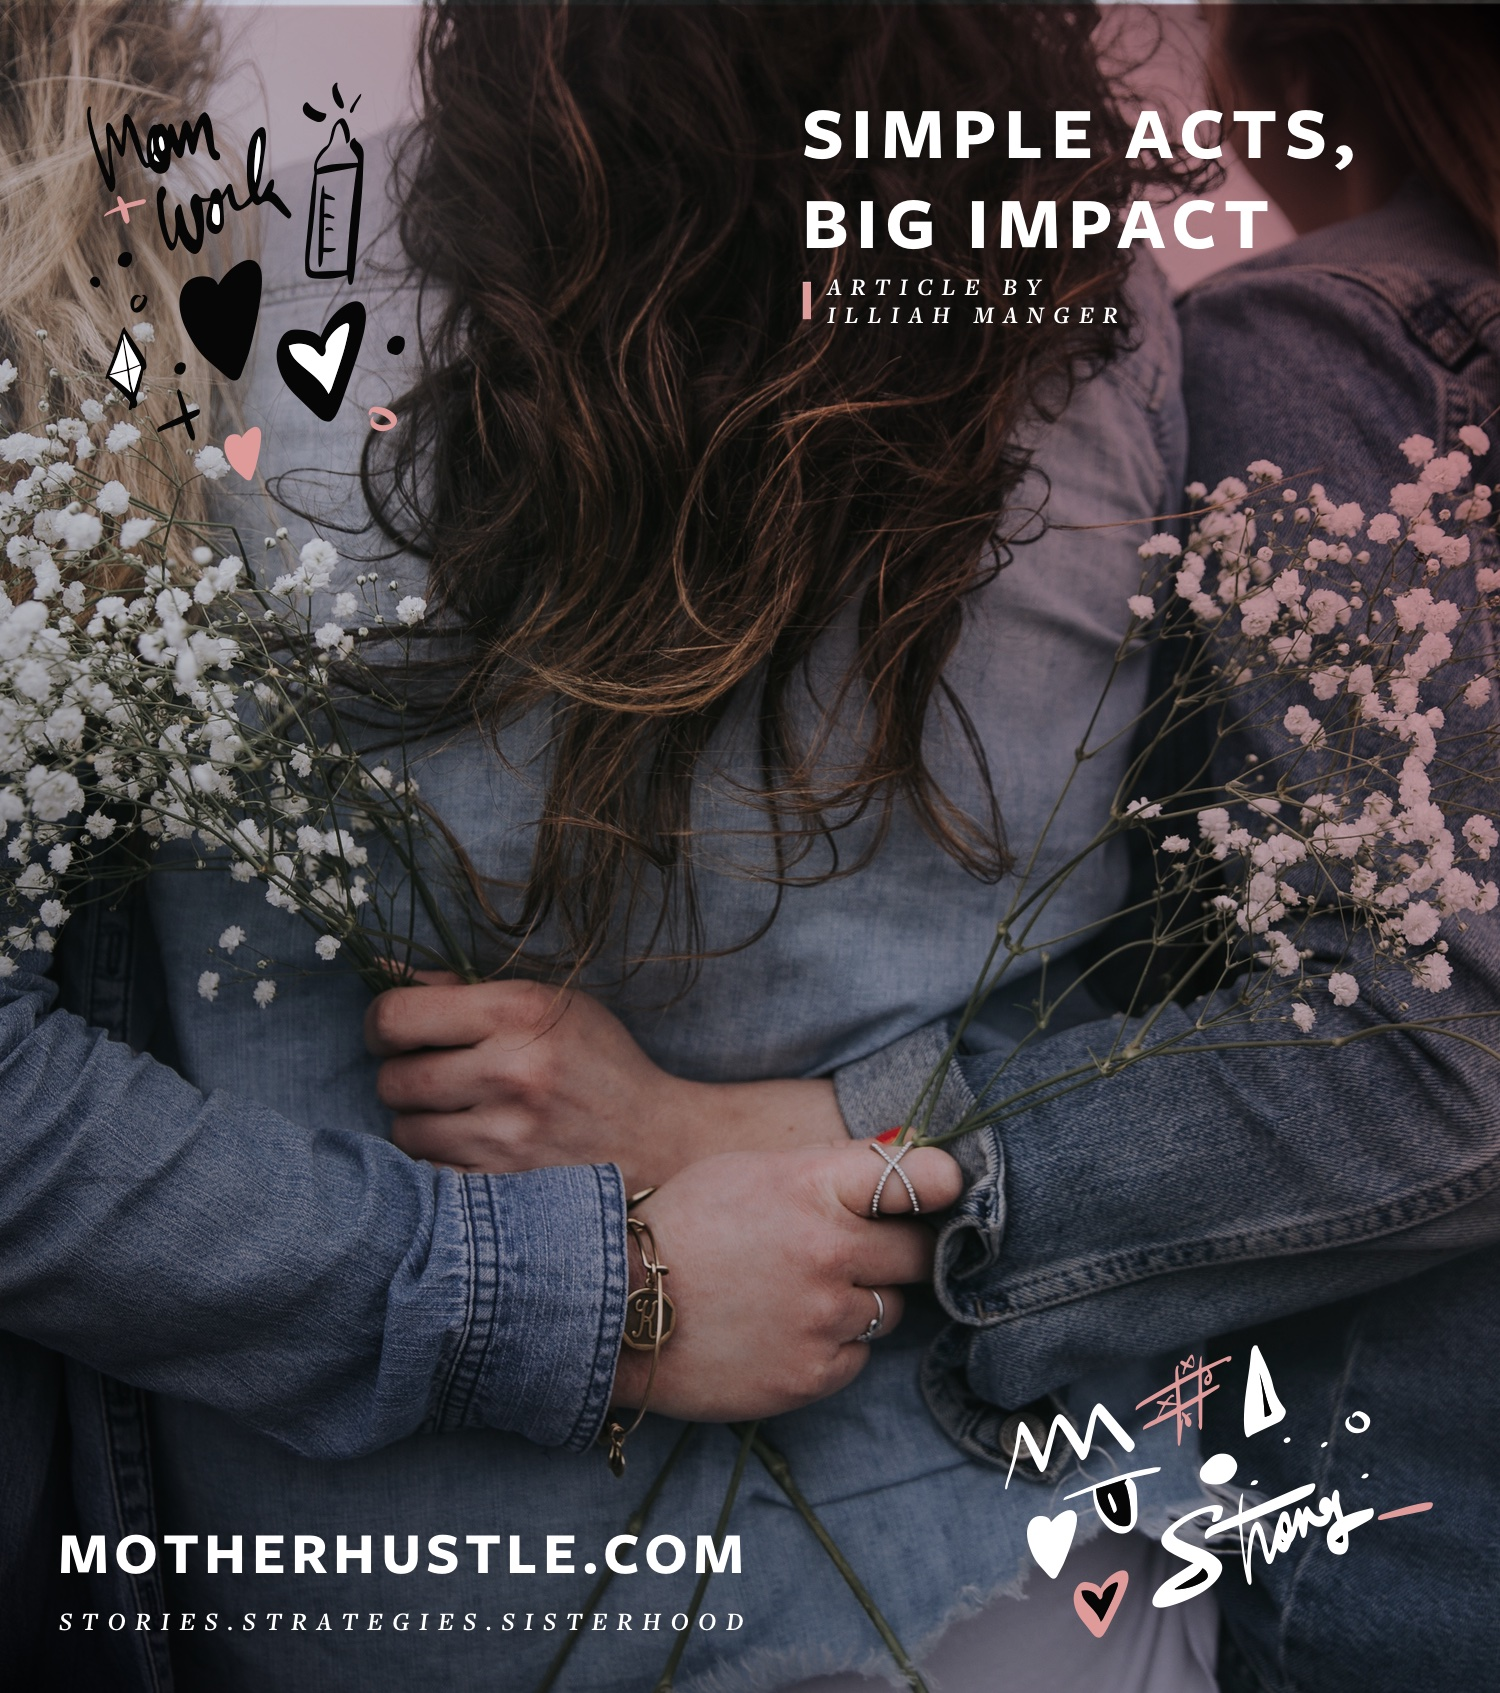 Simple Acts, Big Impact - by Illiah Manger MotherHustle